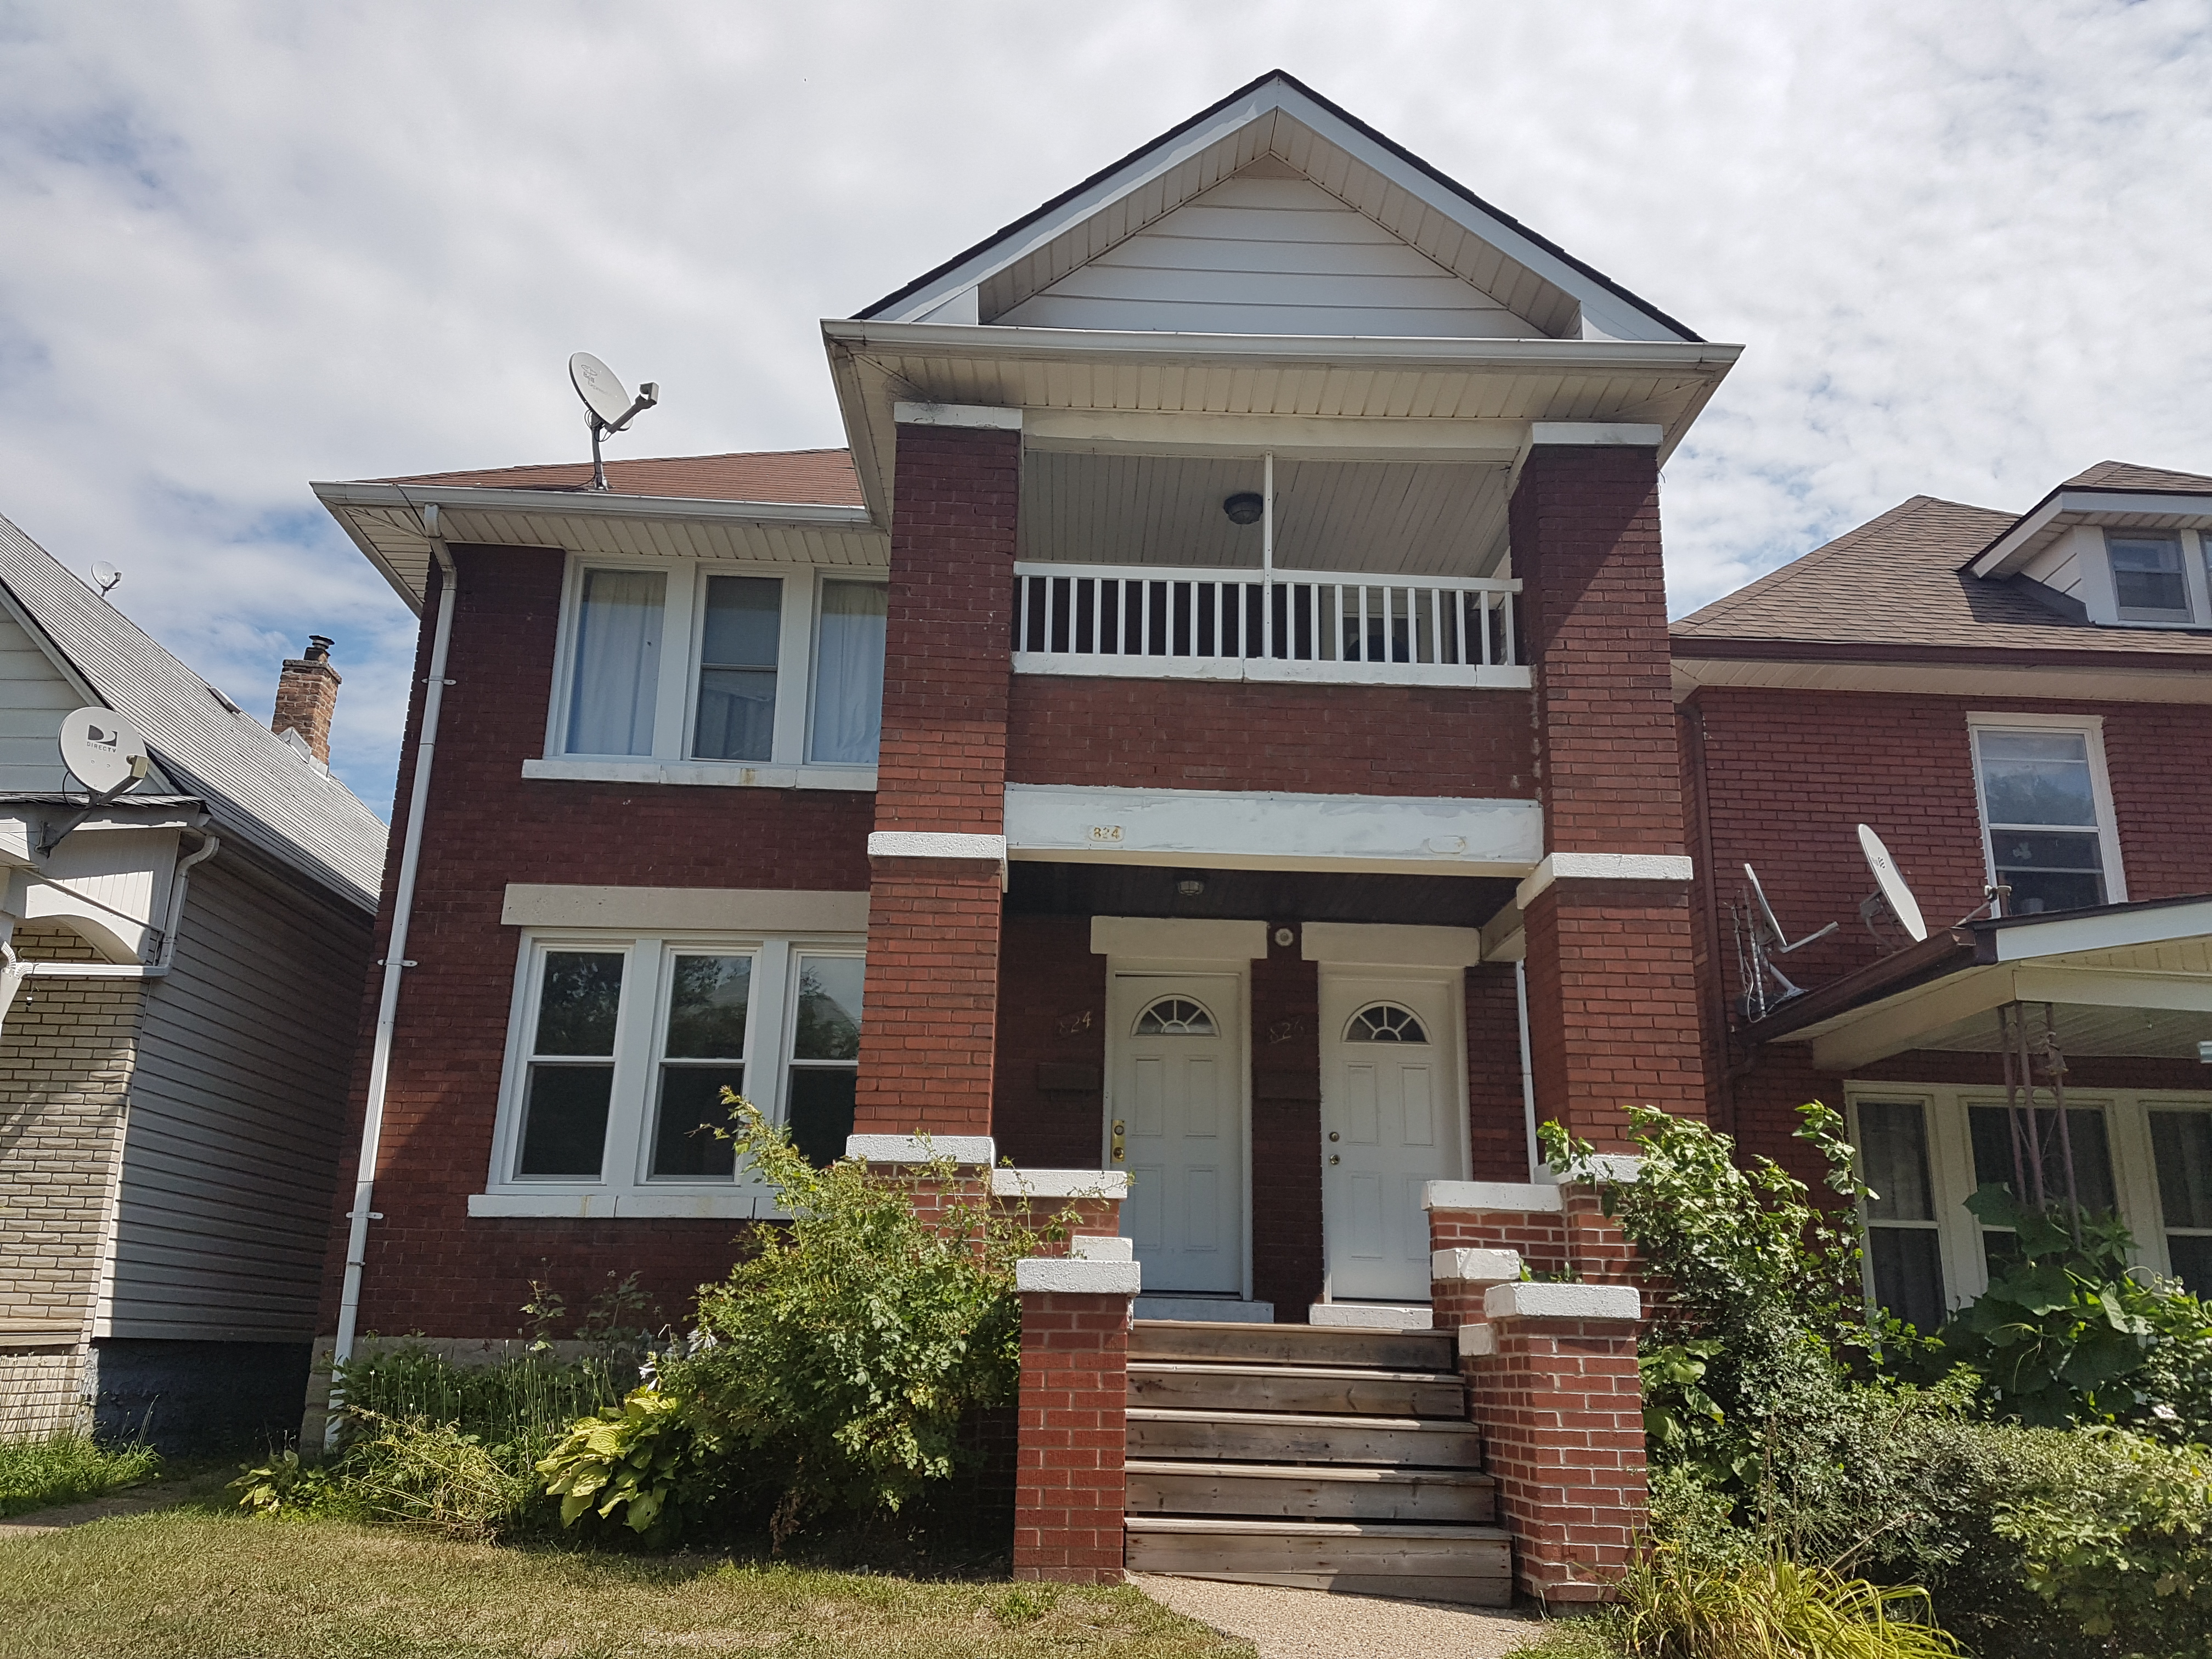 GORGEOUS UPPER UNIT FEATURING 2 BEDROOMS IN GREAT LOCATION!